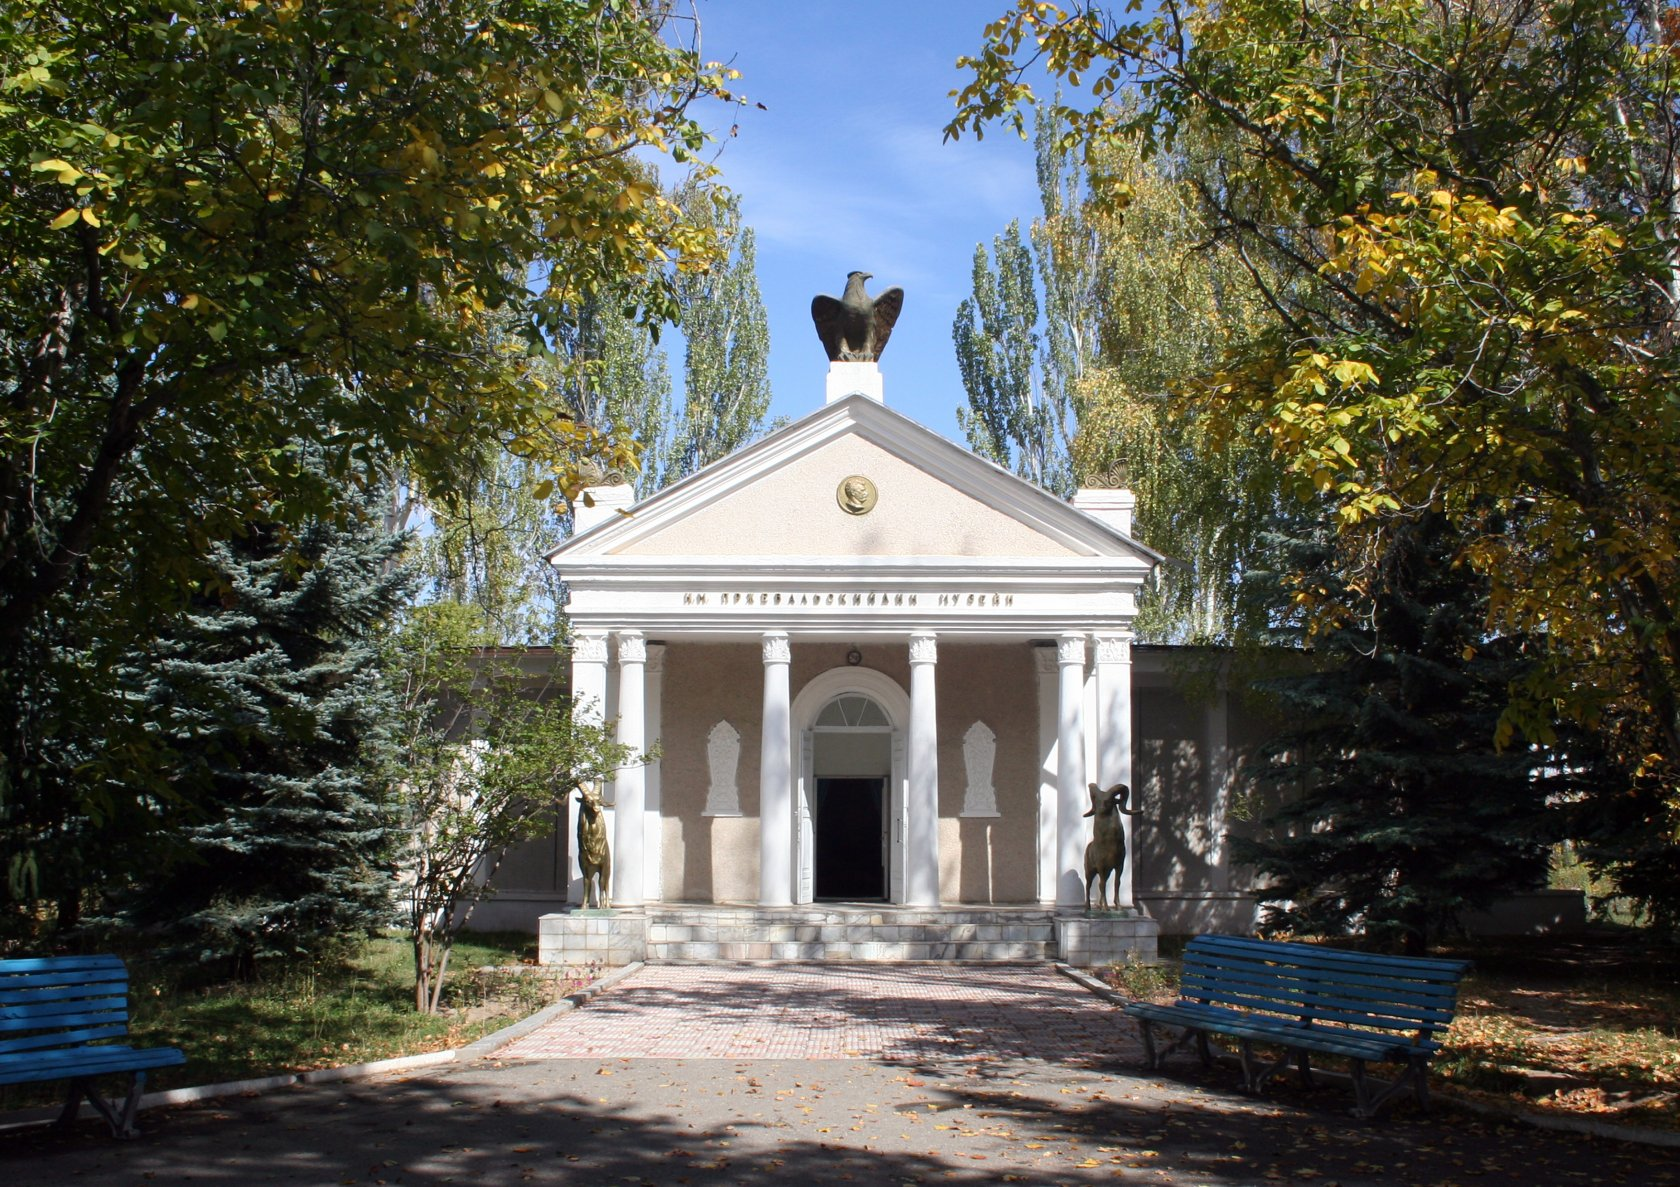 Memorial complex-museum with the tomb of the Russian explorer of Central Asia N. M. Przhevalsky.